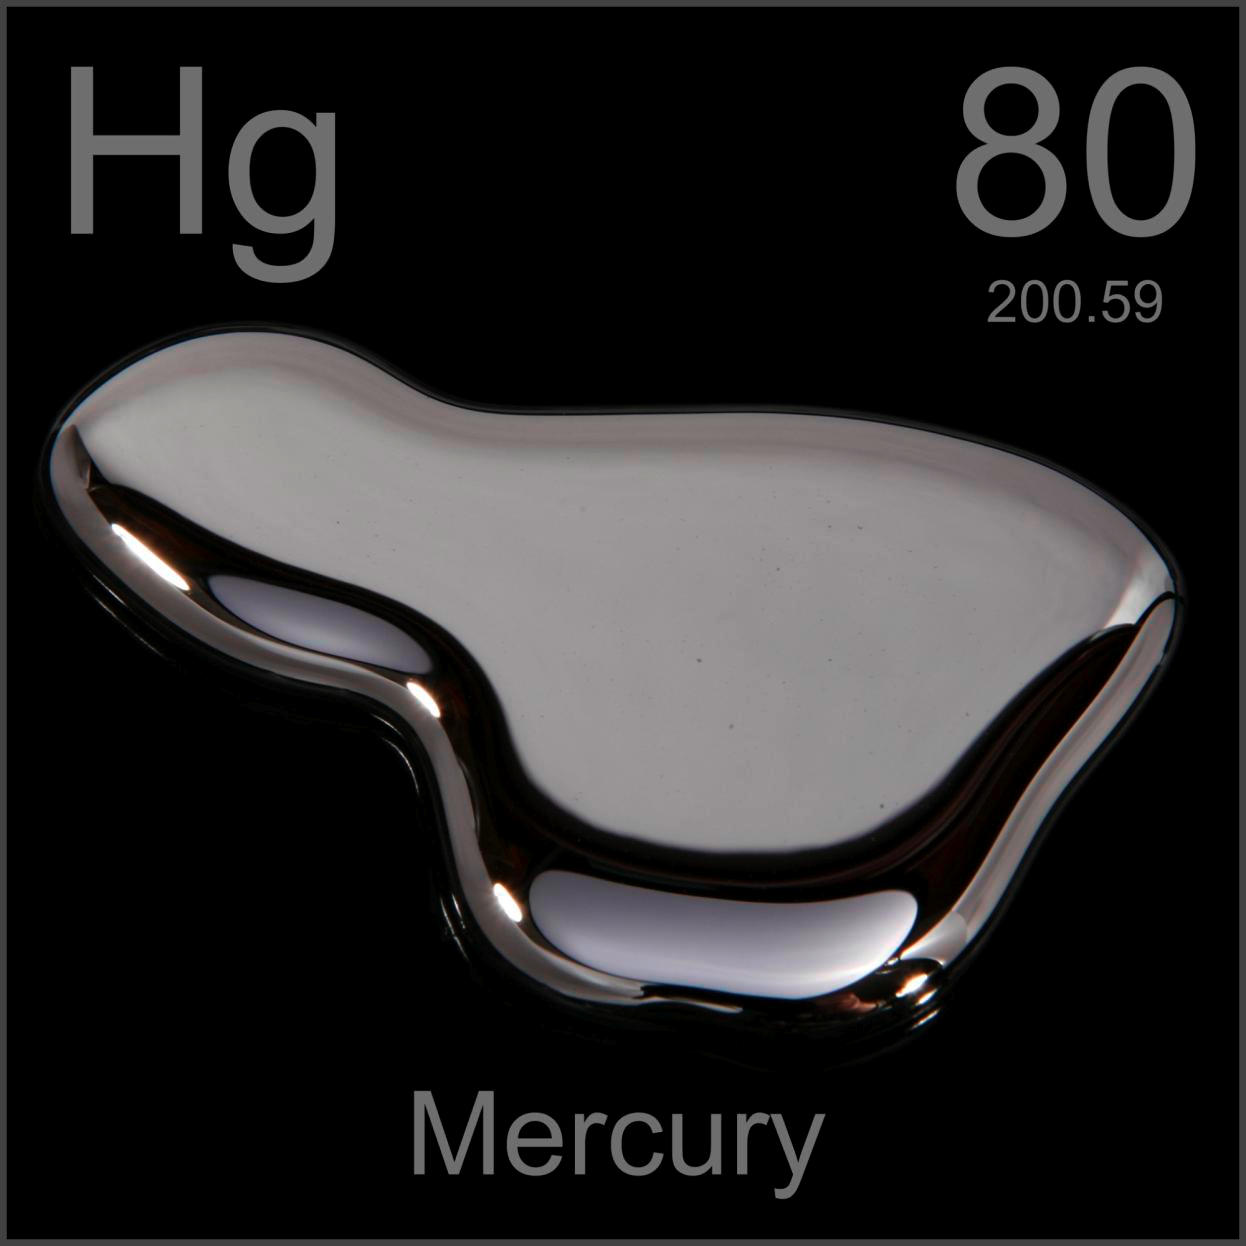 a description of mercury as a silvery liquid metal at room temperature The description of the element in its natural form a liquid, silvery metal elemental mercury, a liquid at room temperature.